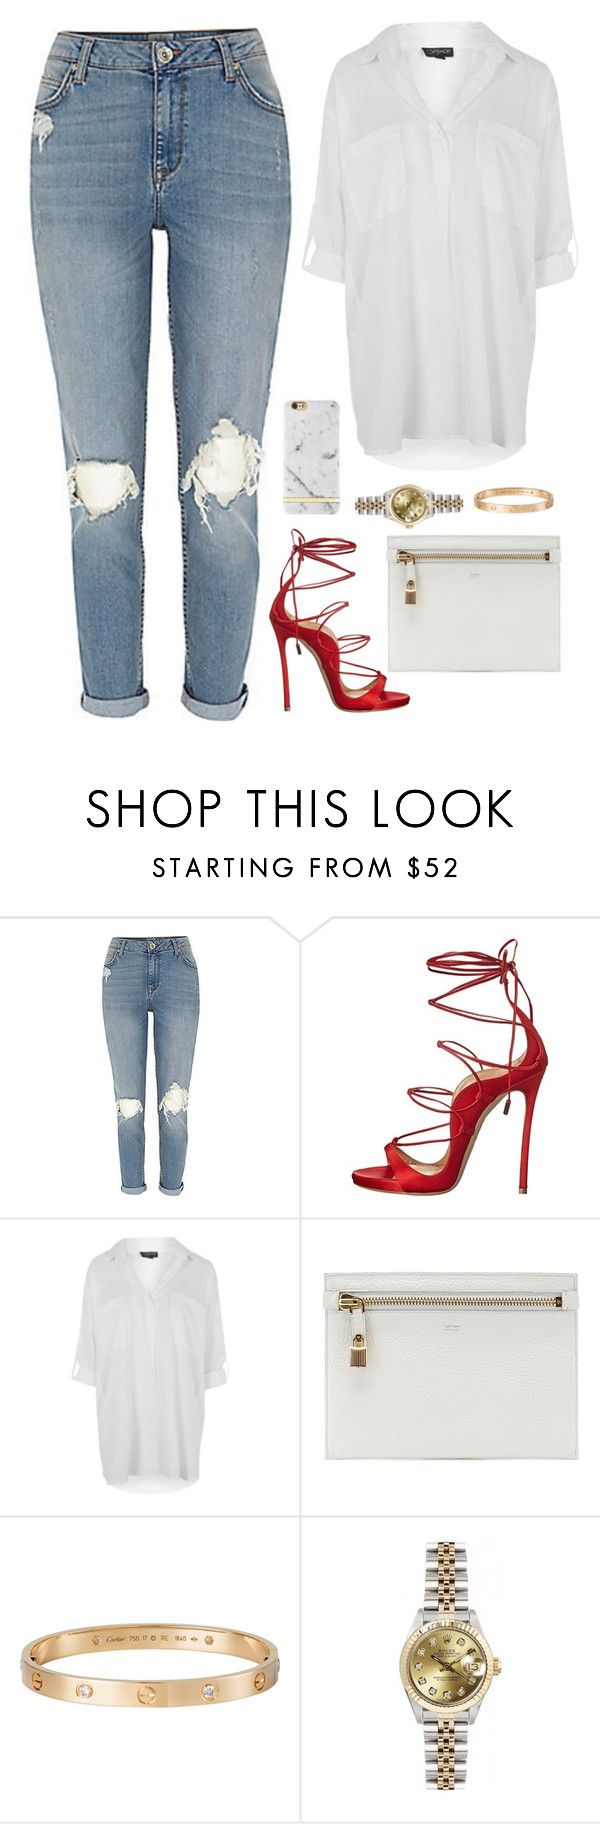 """."" by owl00 ❤ liked on Polyvore featuring Dsquared2, Topshop, Tom Ford, Cartier, Rolex and Richmond & Finch"